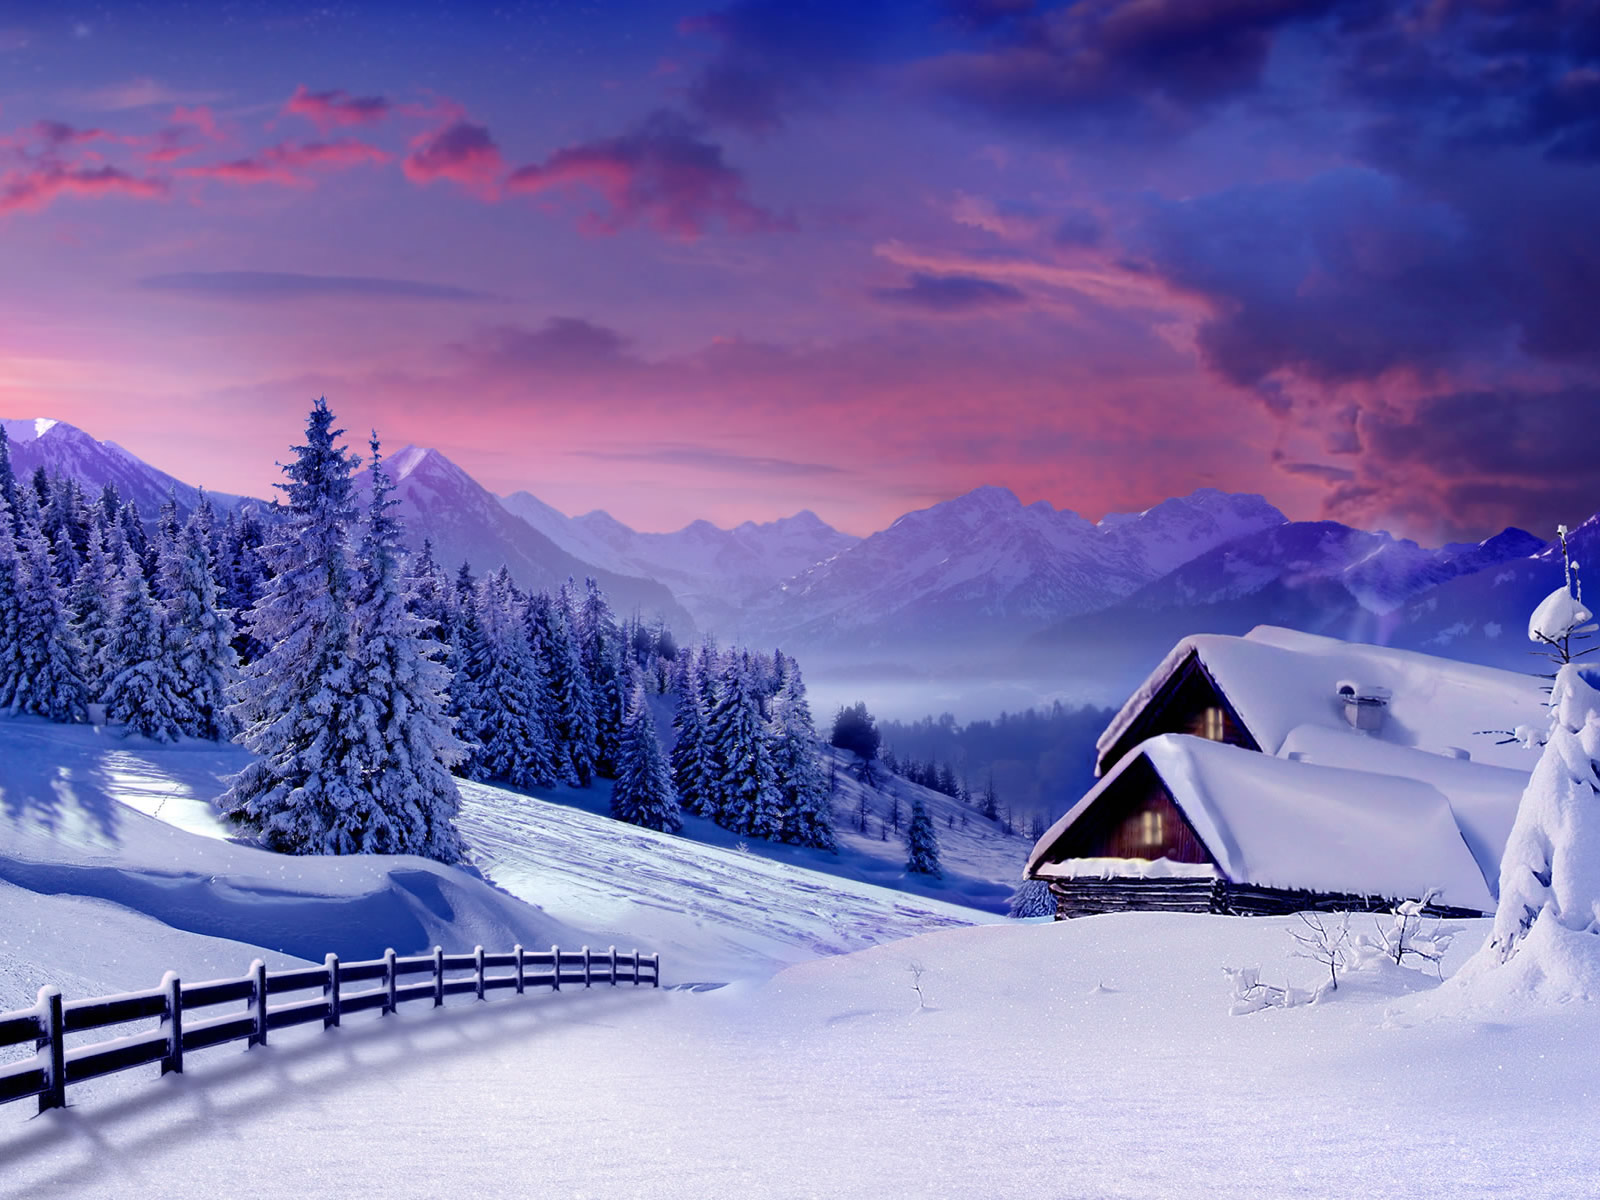 free winter desktop wallpaper downloads   wwwwallpapers in hdcom 1600x1200